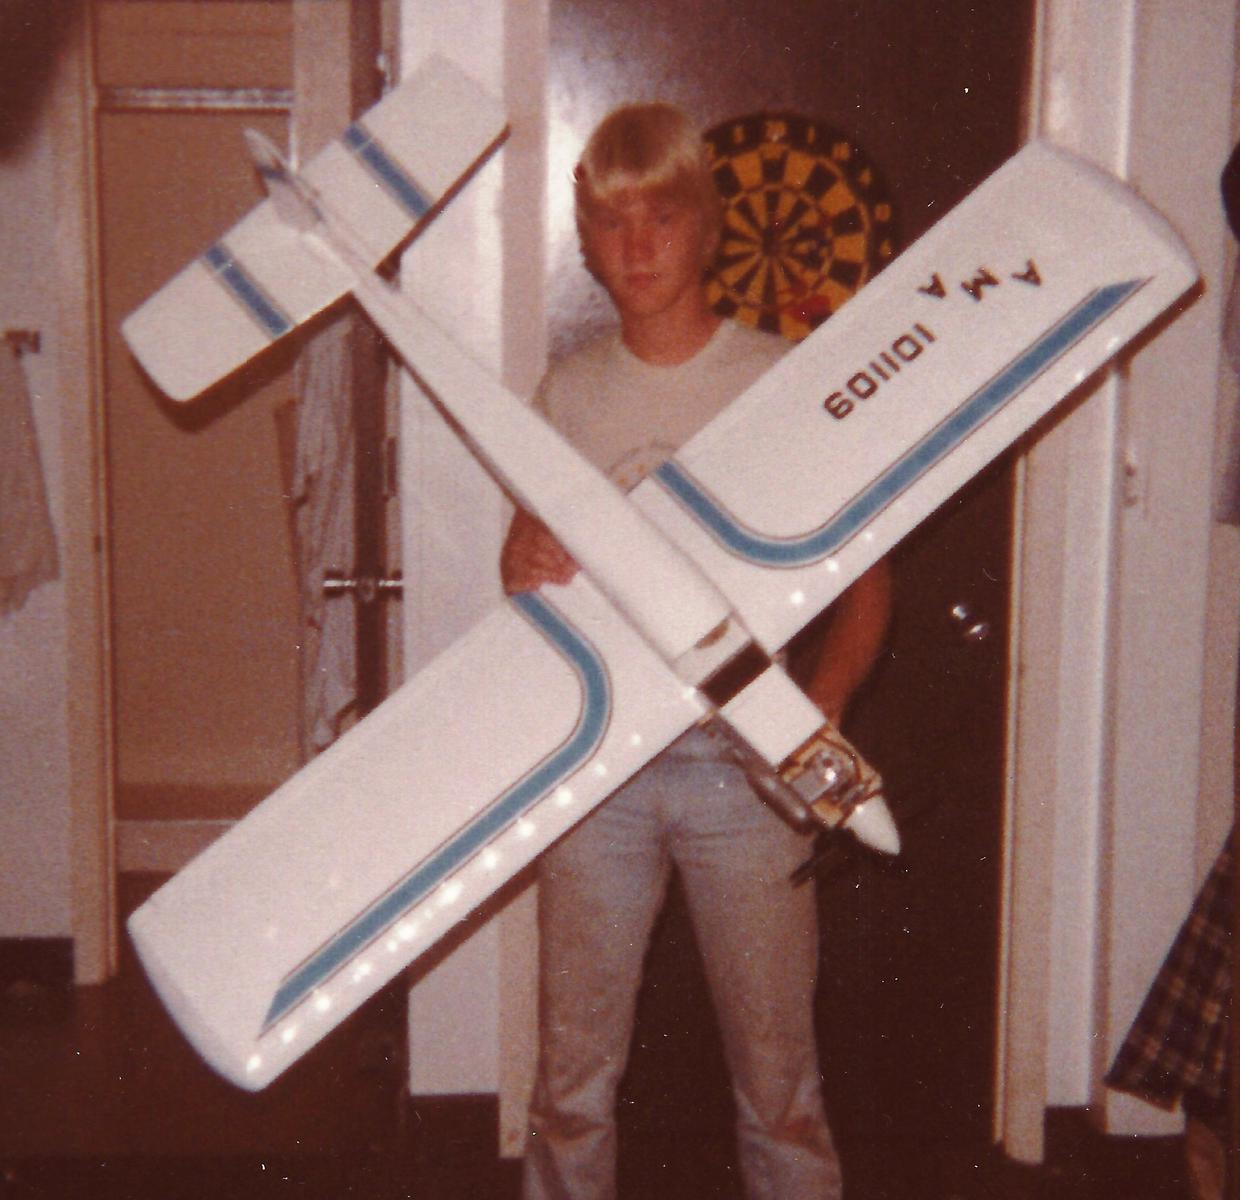 Me, ca. 1984 with the newly built Goldberg Sky Tiger